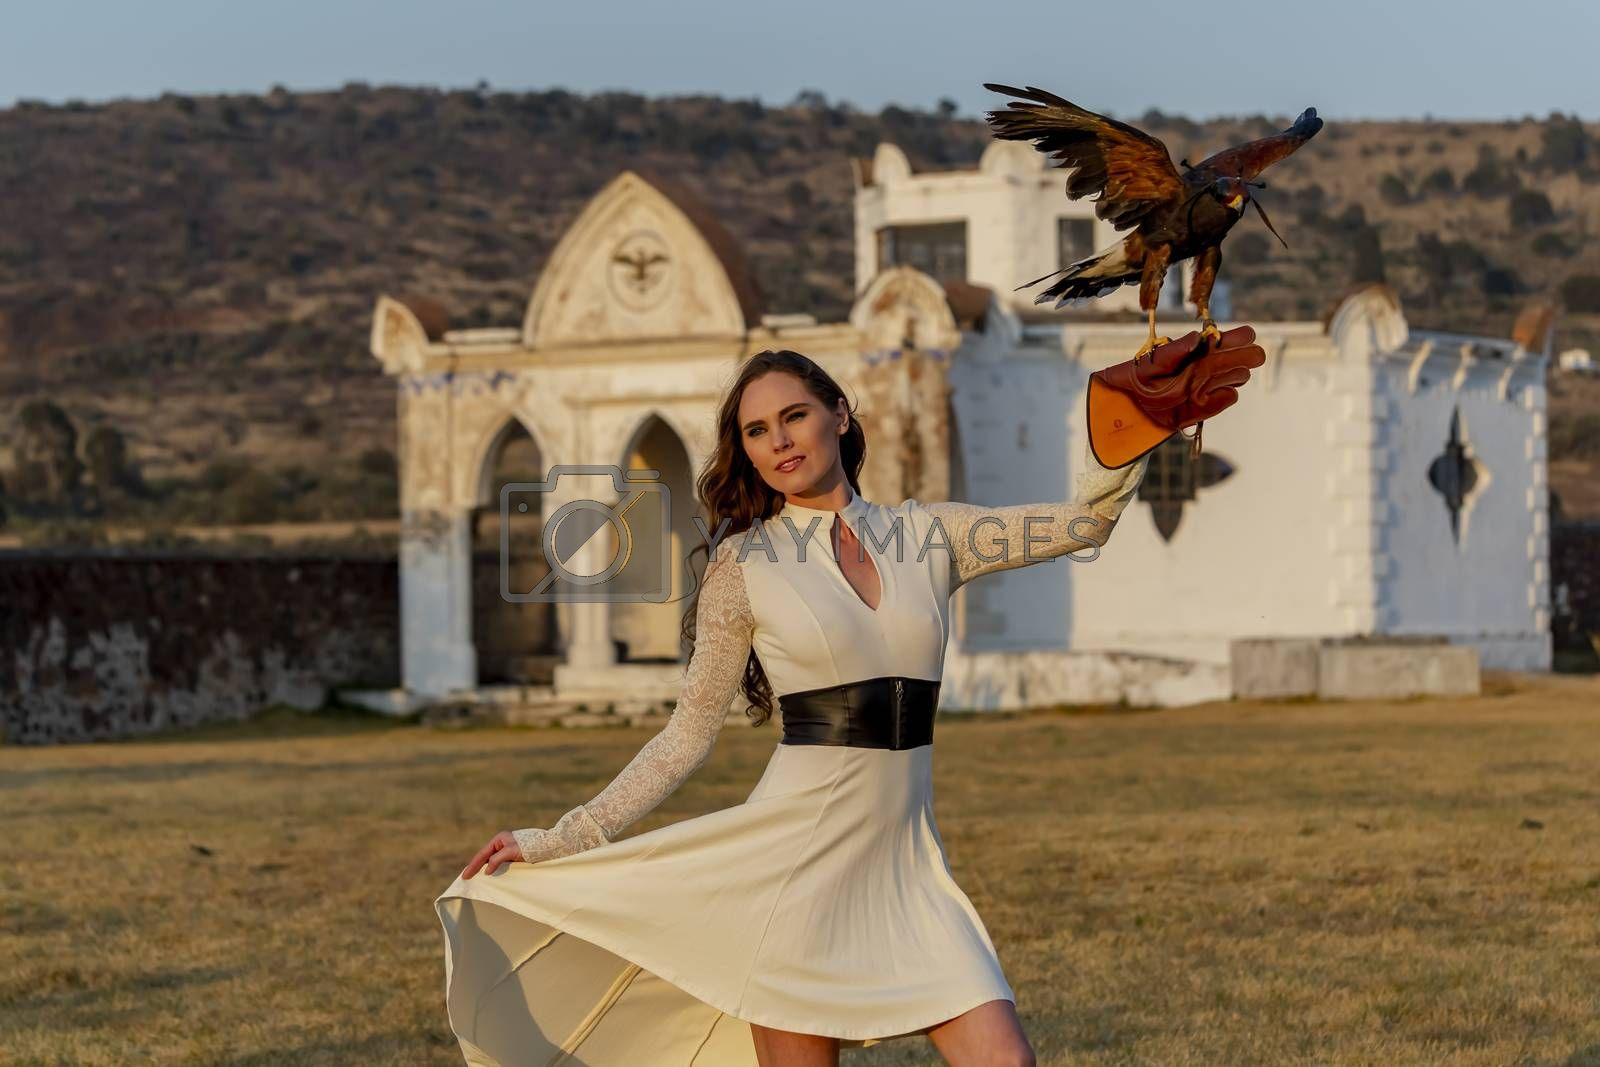 A Lovely Hispanic Brunette Model Poses Outdoors With A Falcon At A Hacienda by actionsports